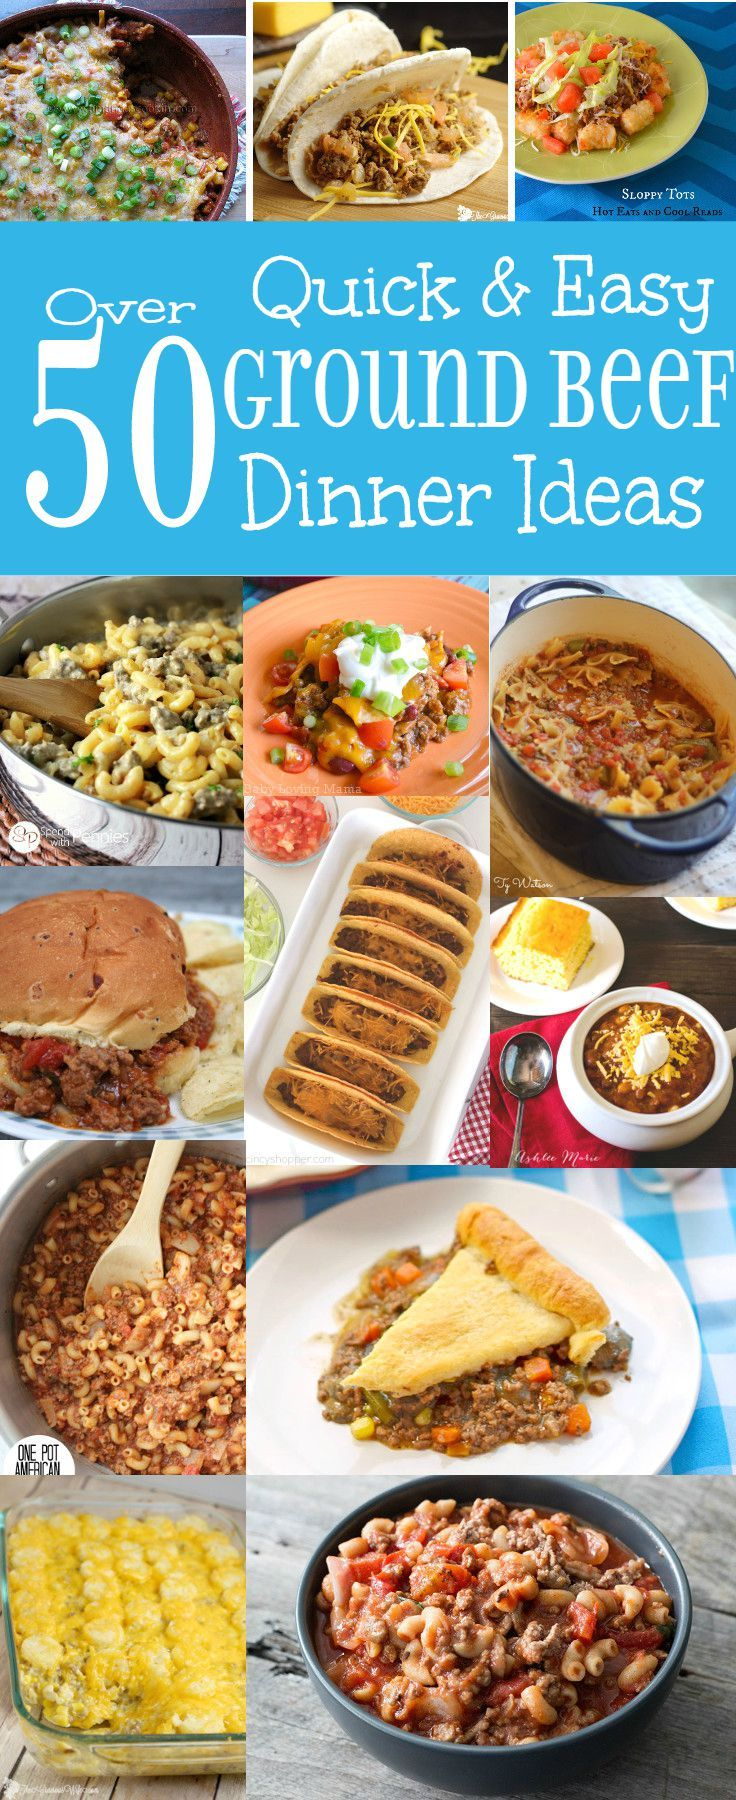 Easy Simple Supper Ideas